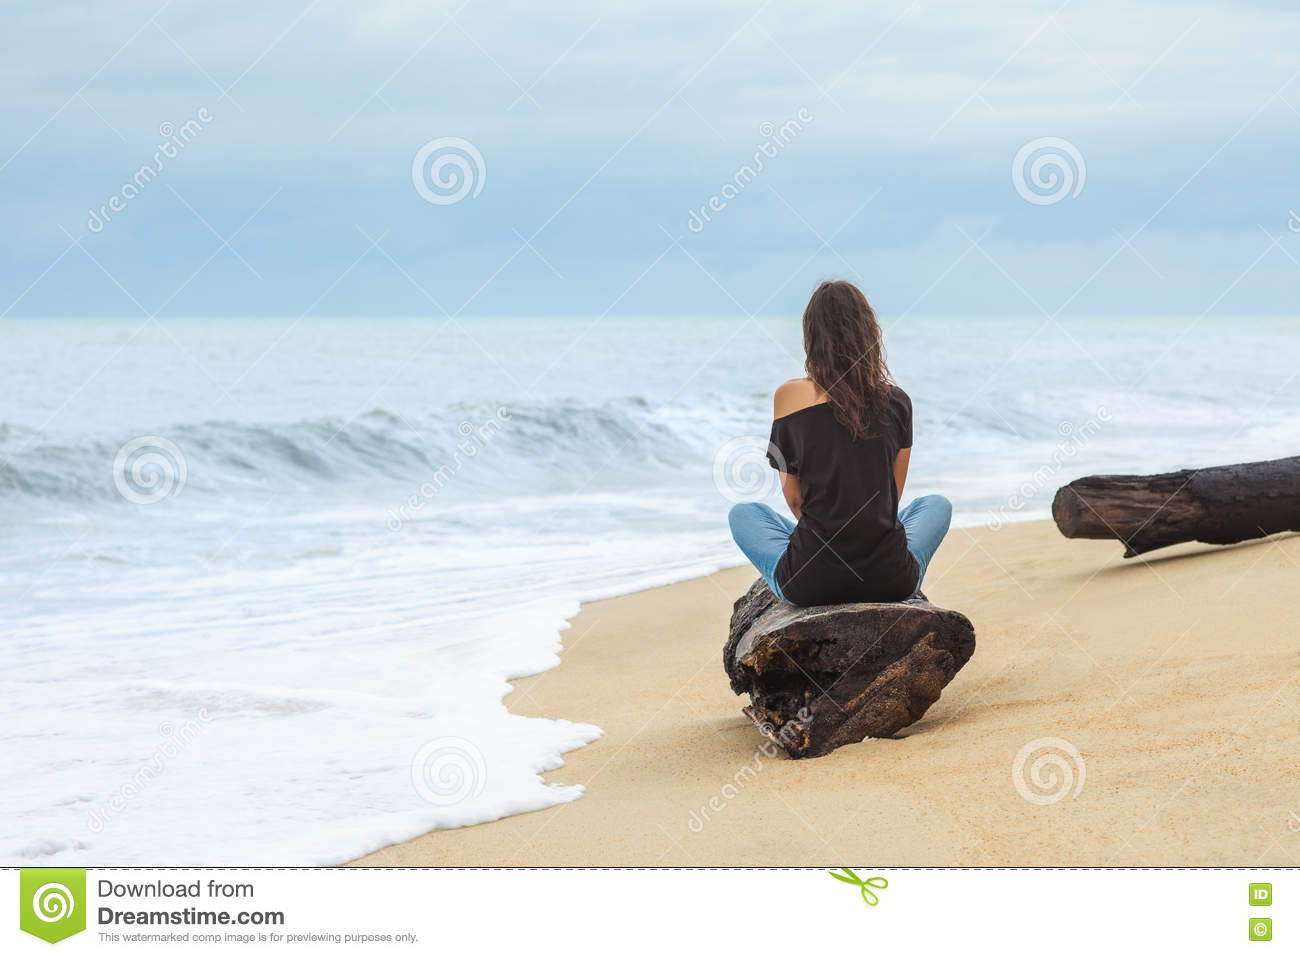 Lonely Tropical Sandy Island Clip Art Royalty Free Stock Images.